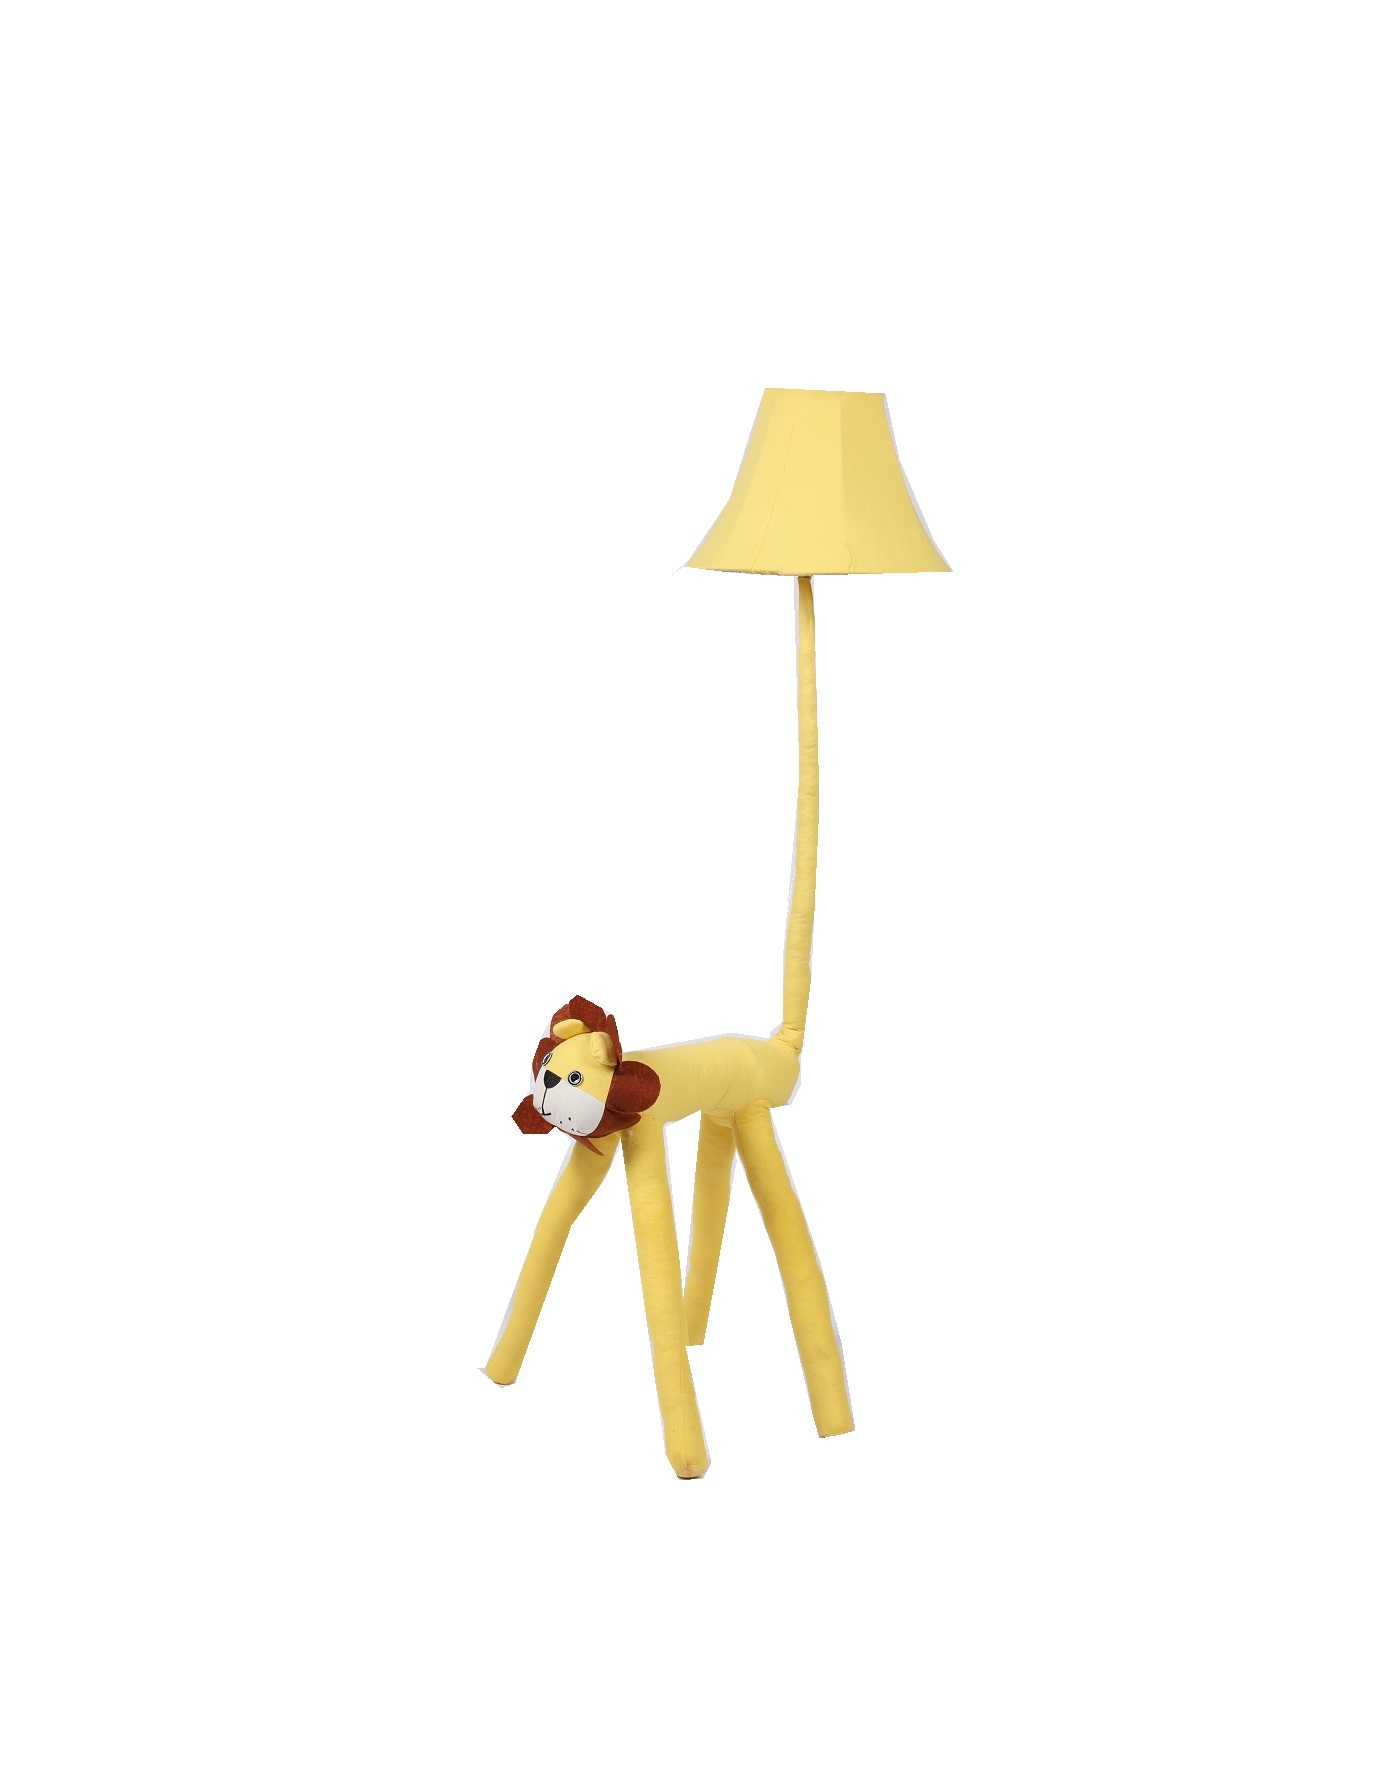 Floor lamps table lamps wall light room decor nursery kids animal shades